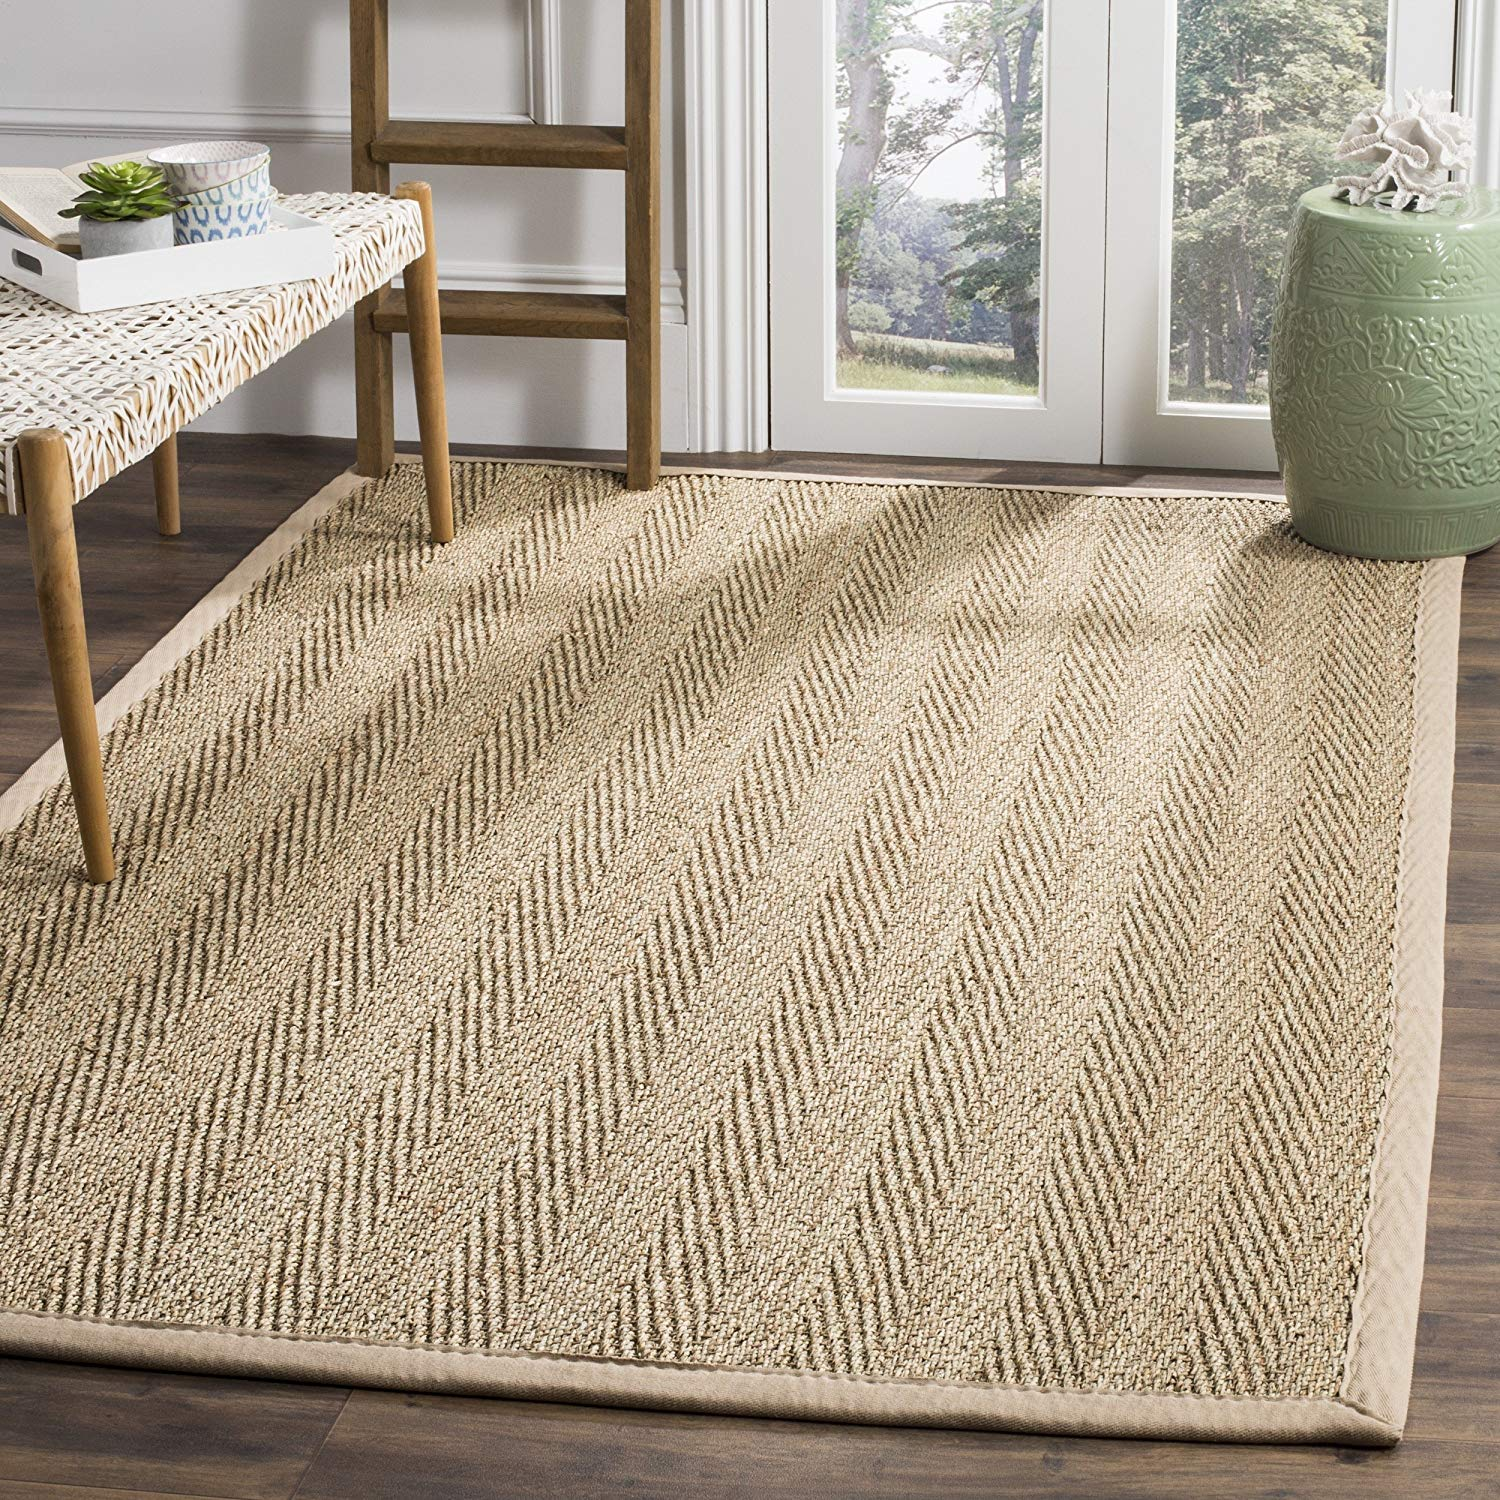 Safavieh NF115A Herringbone Natural and Beige Seagrass Area Rug